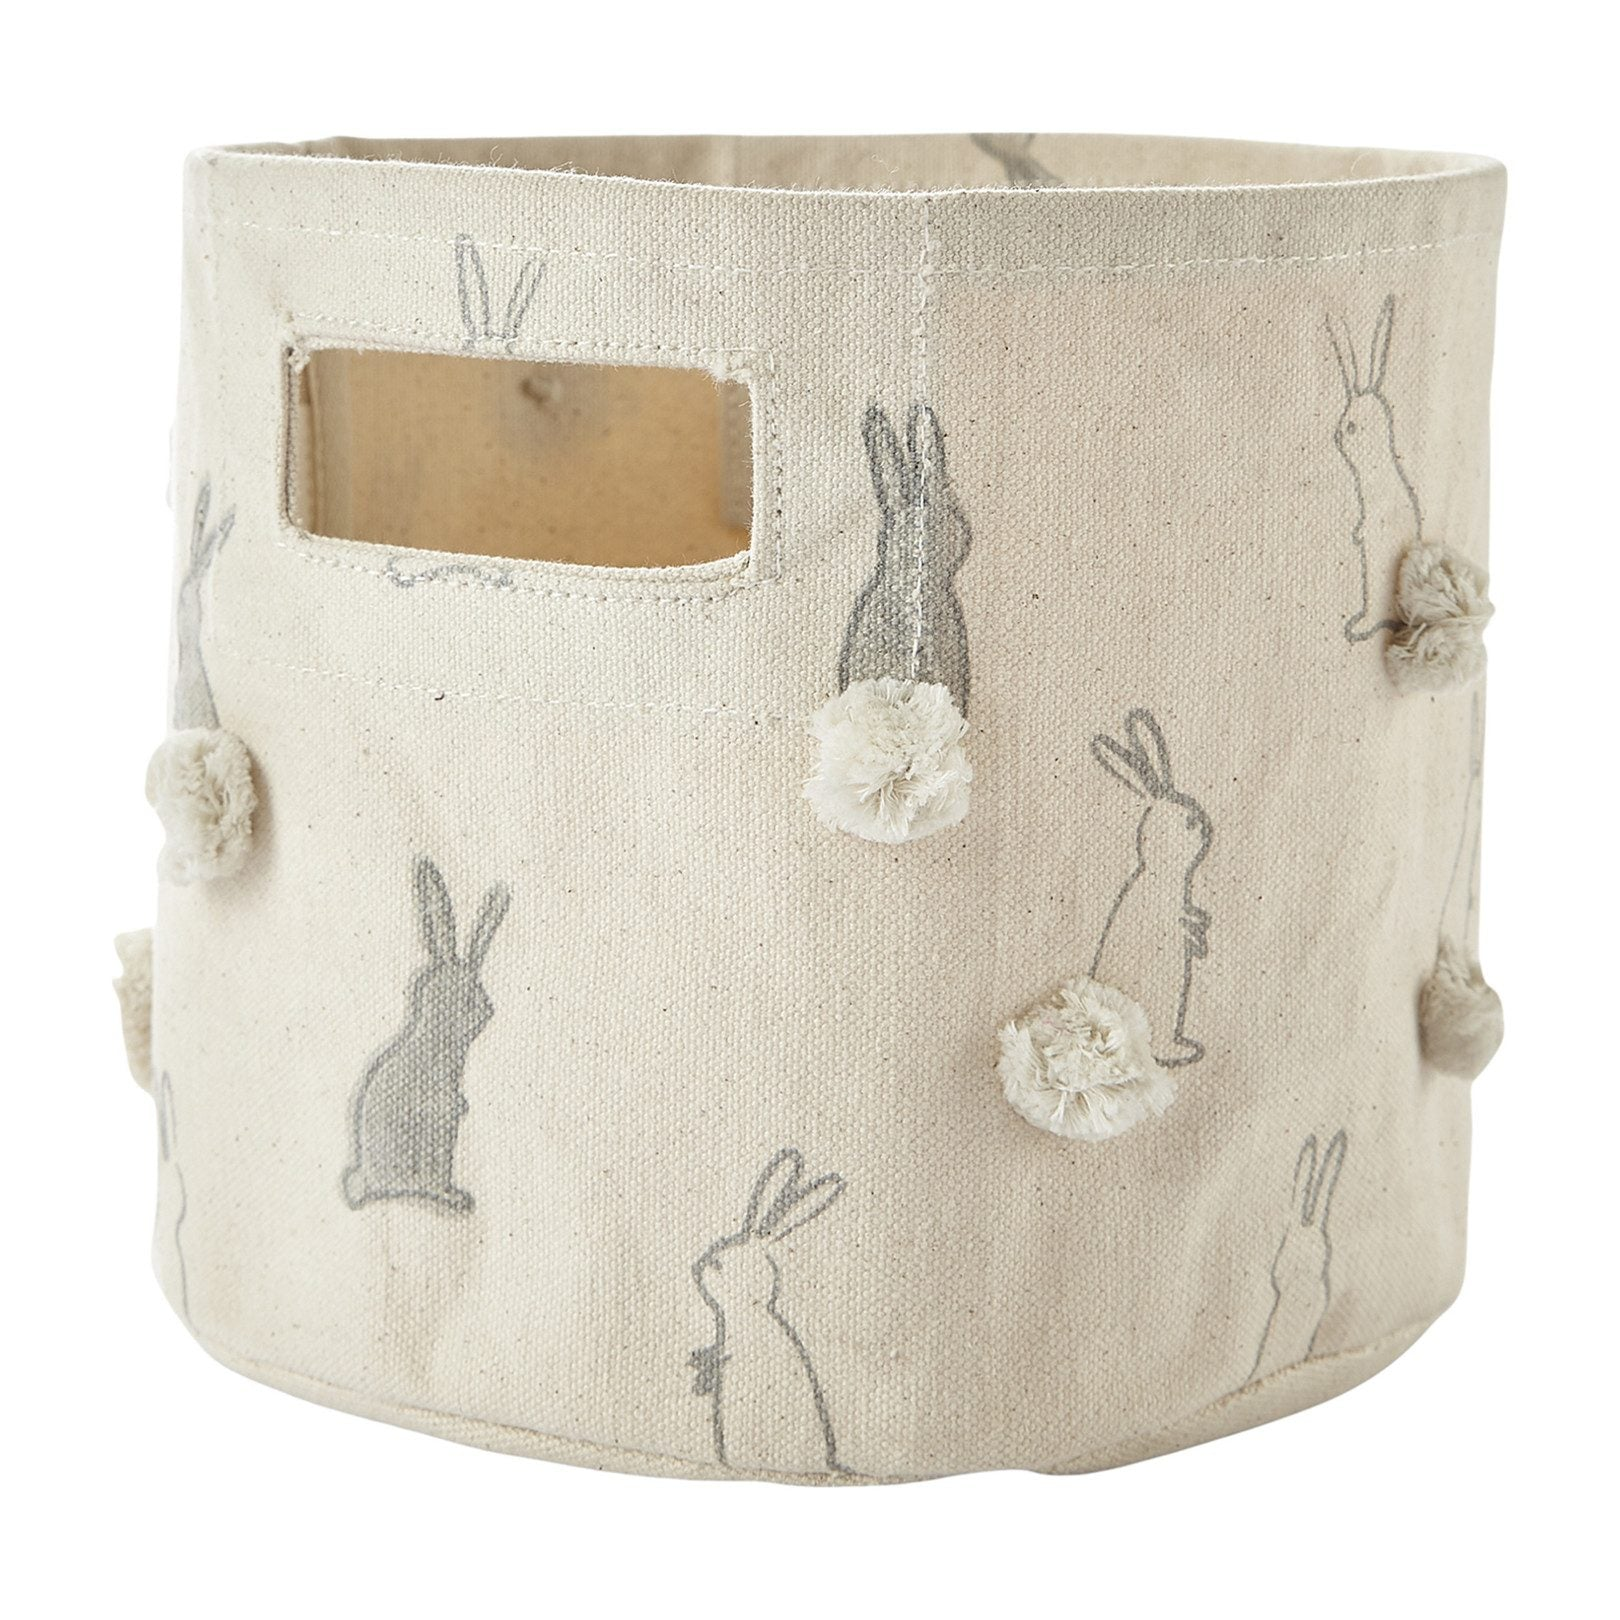 Pehr Bunny Hop Mini Bin with Pom Poms